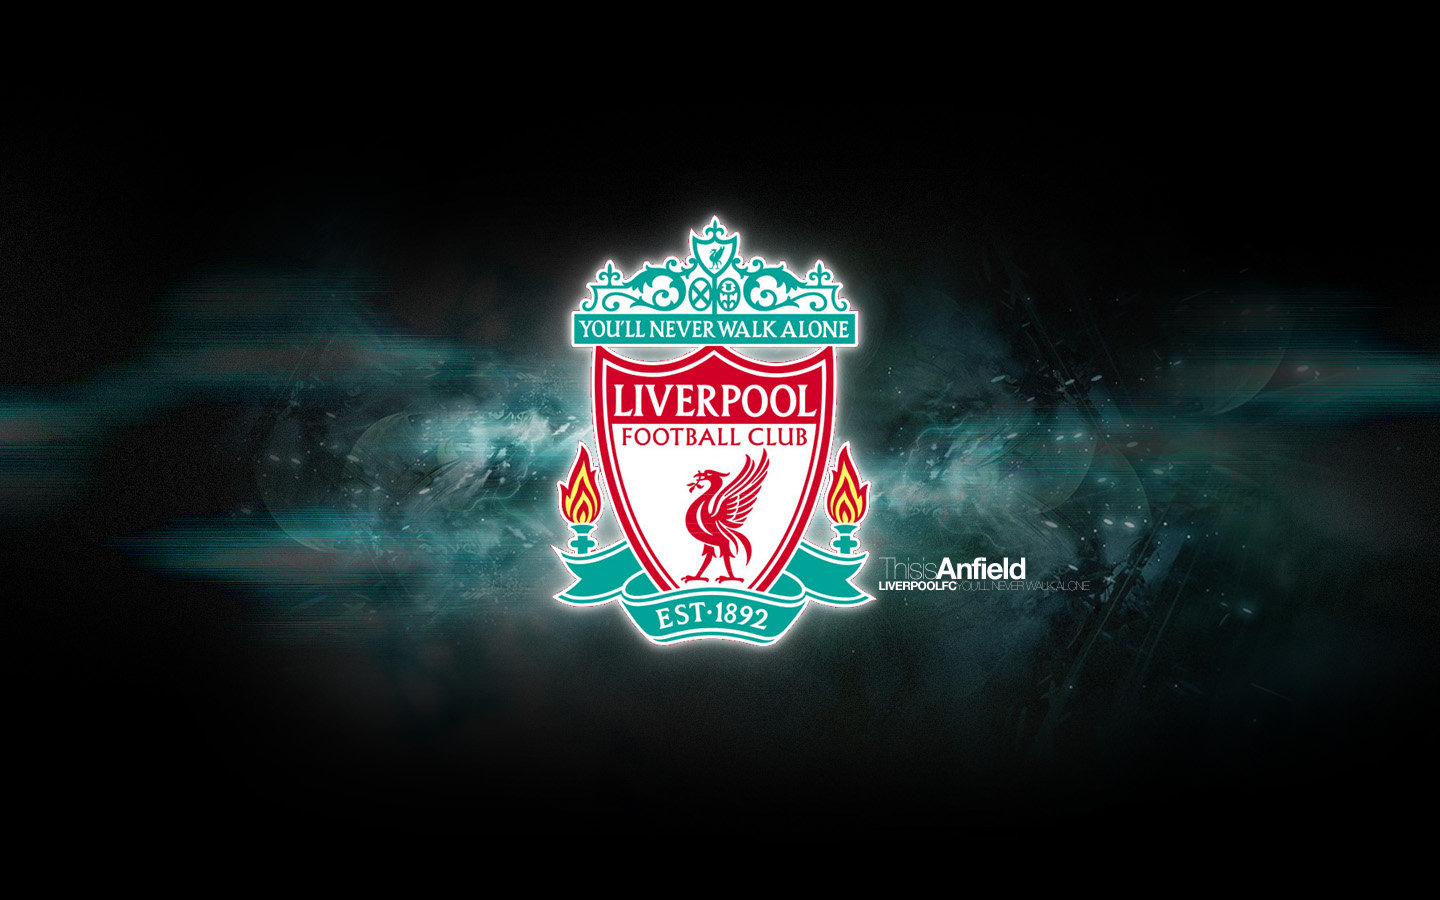 Wall.Cookdiary.net Best of Liverpool F.C. Wallpapers HD